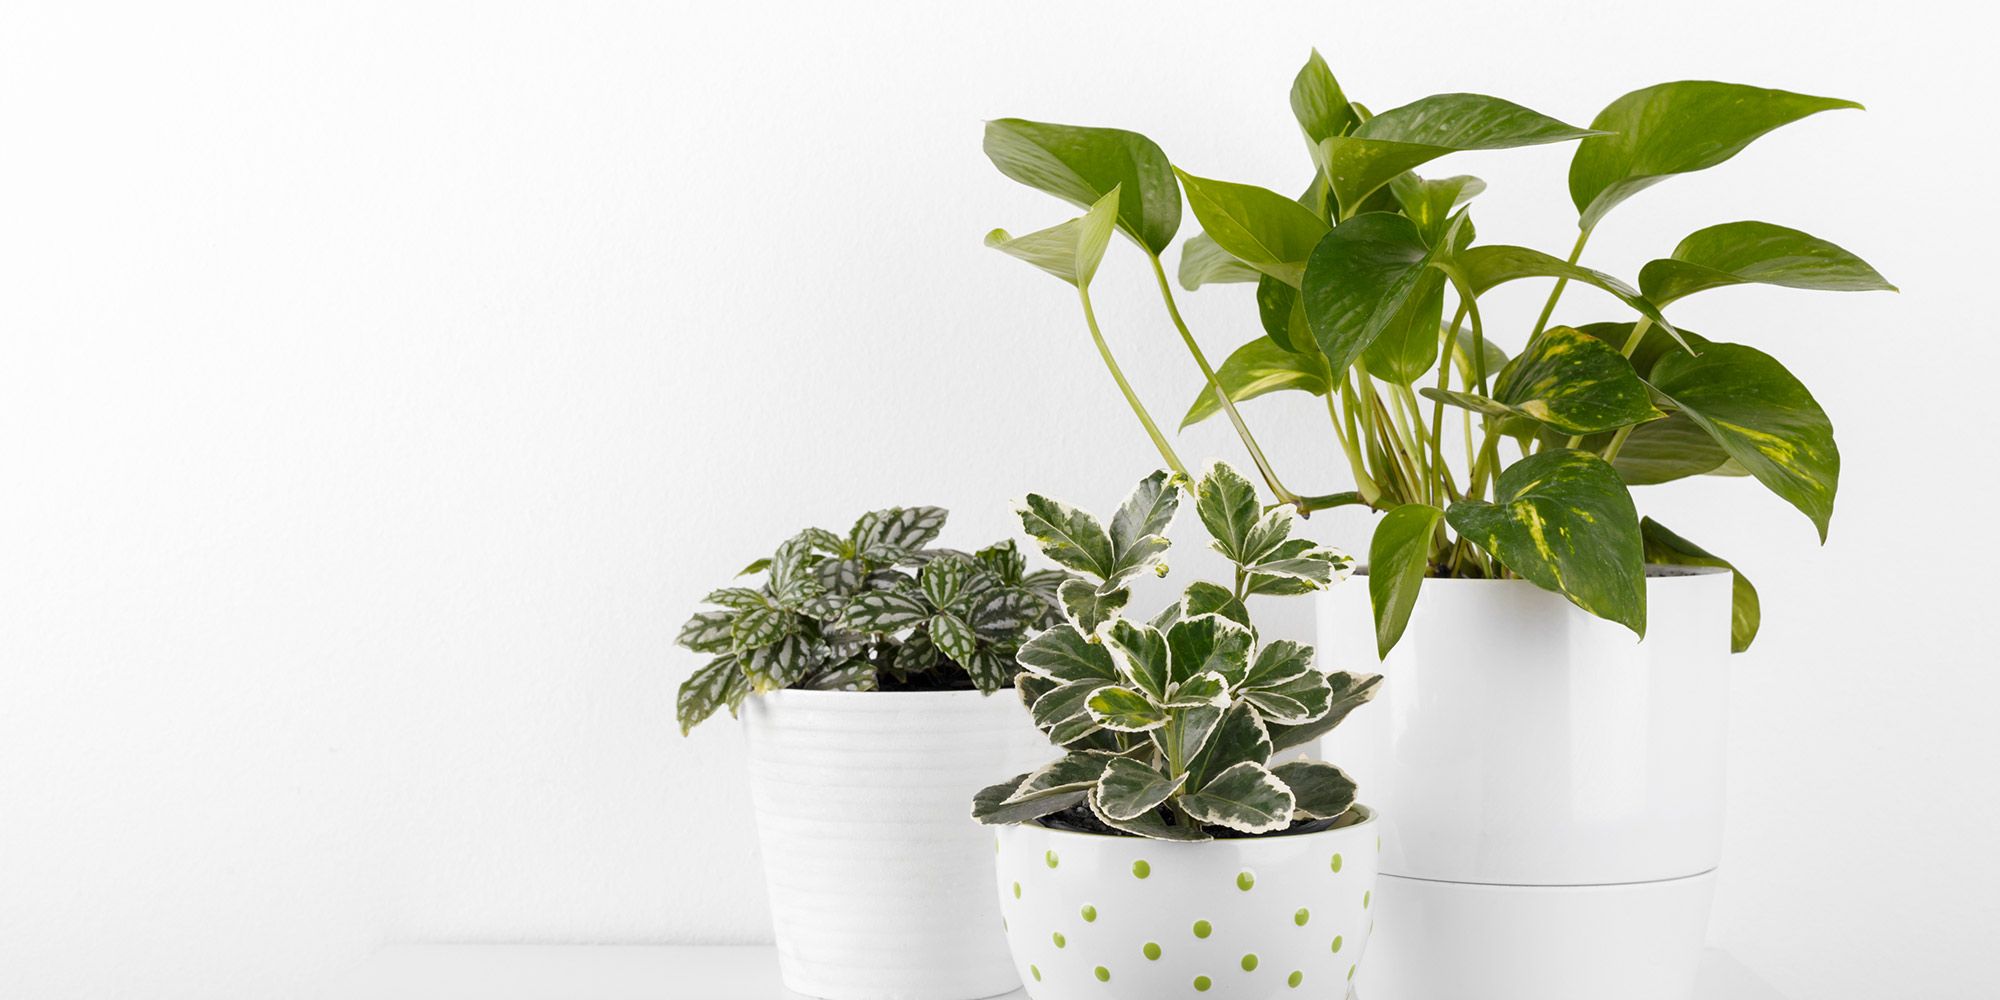 To take the dust off live or artificial leaves, lightly dampen a microfiber cloth and wipe over the leaves. This will also add a bit of moisture to the real plants too.